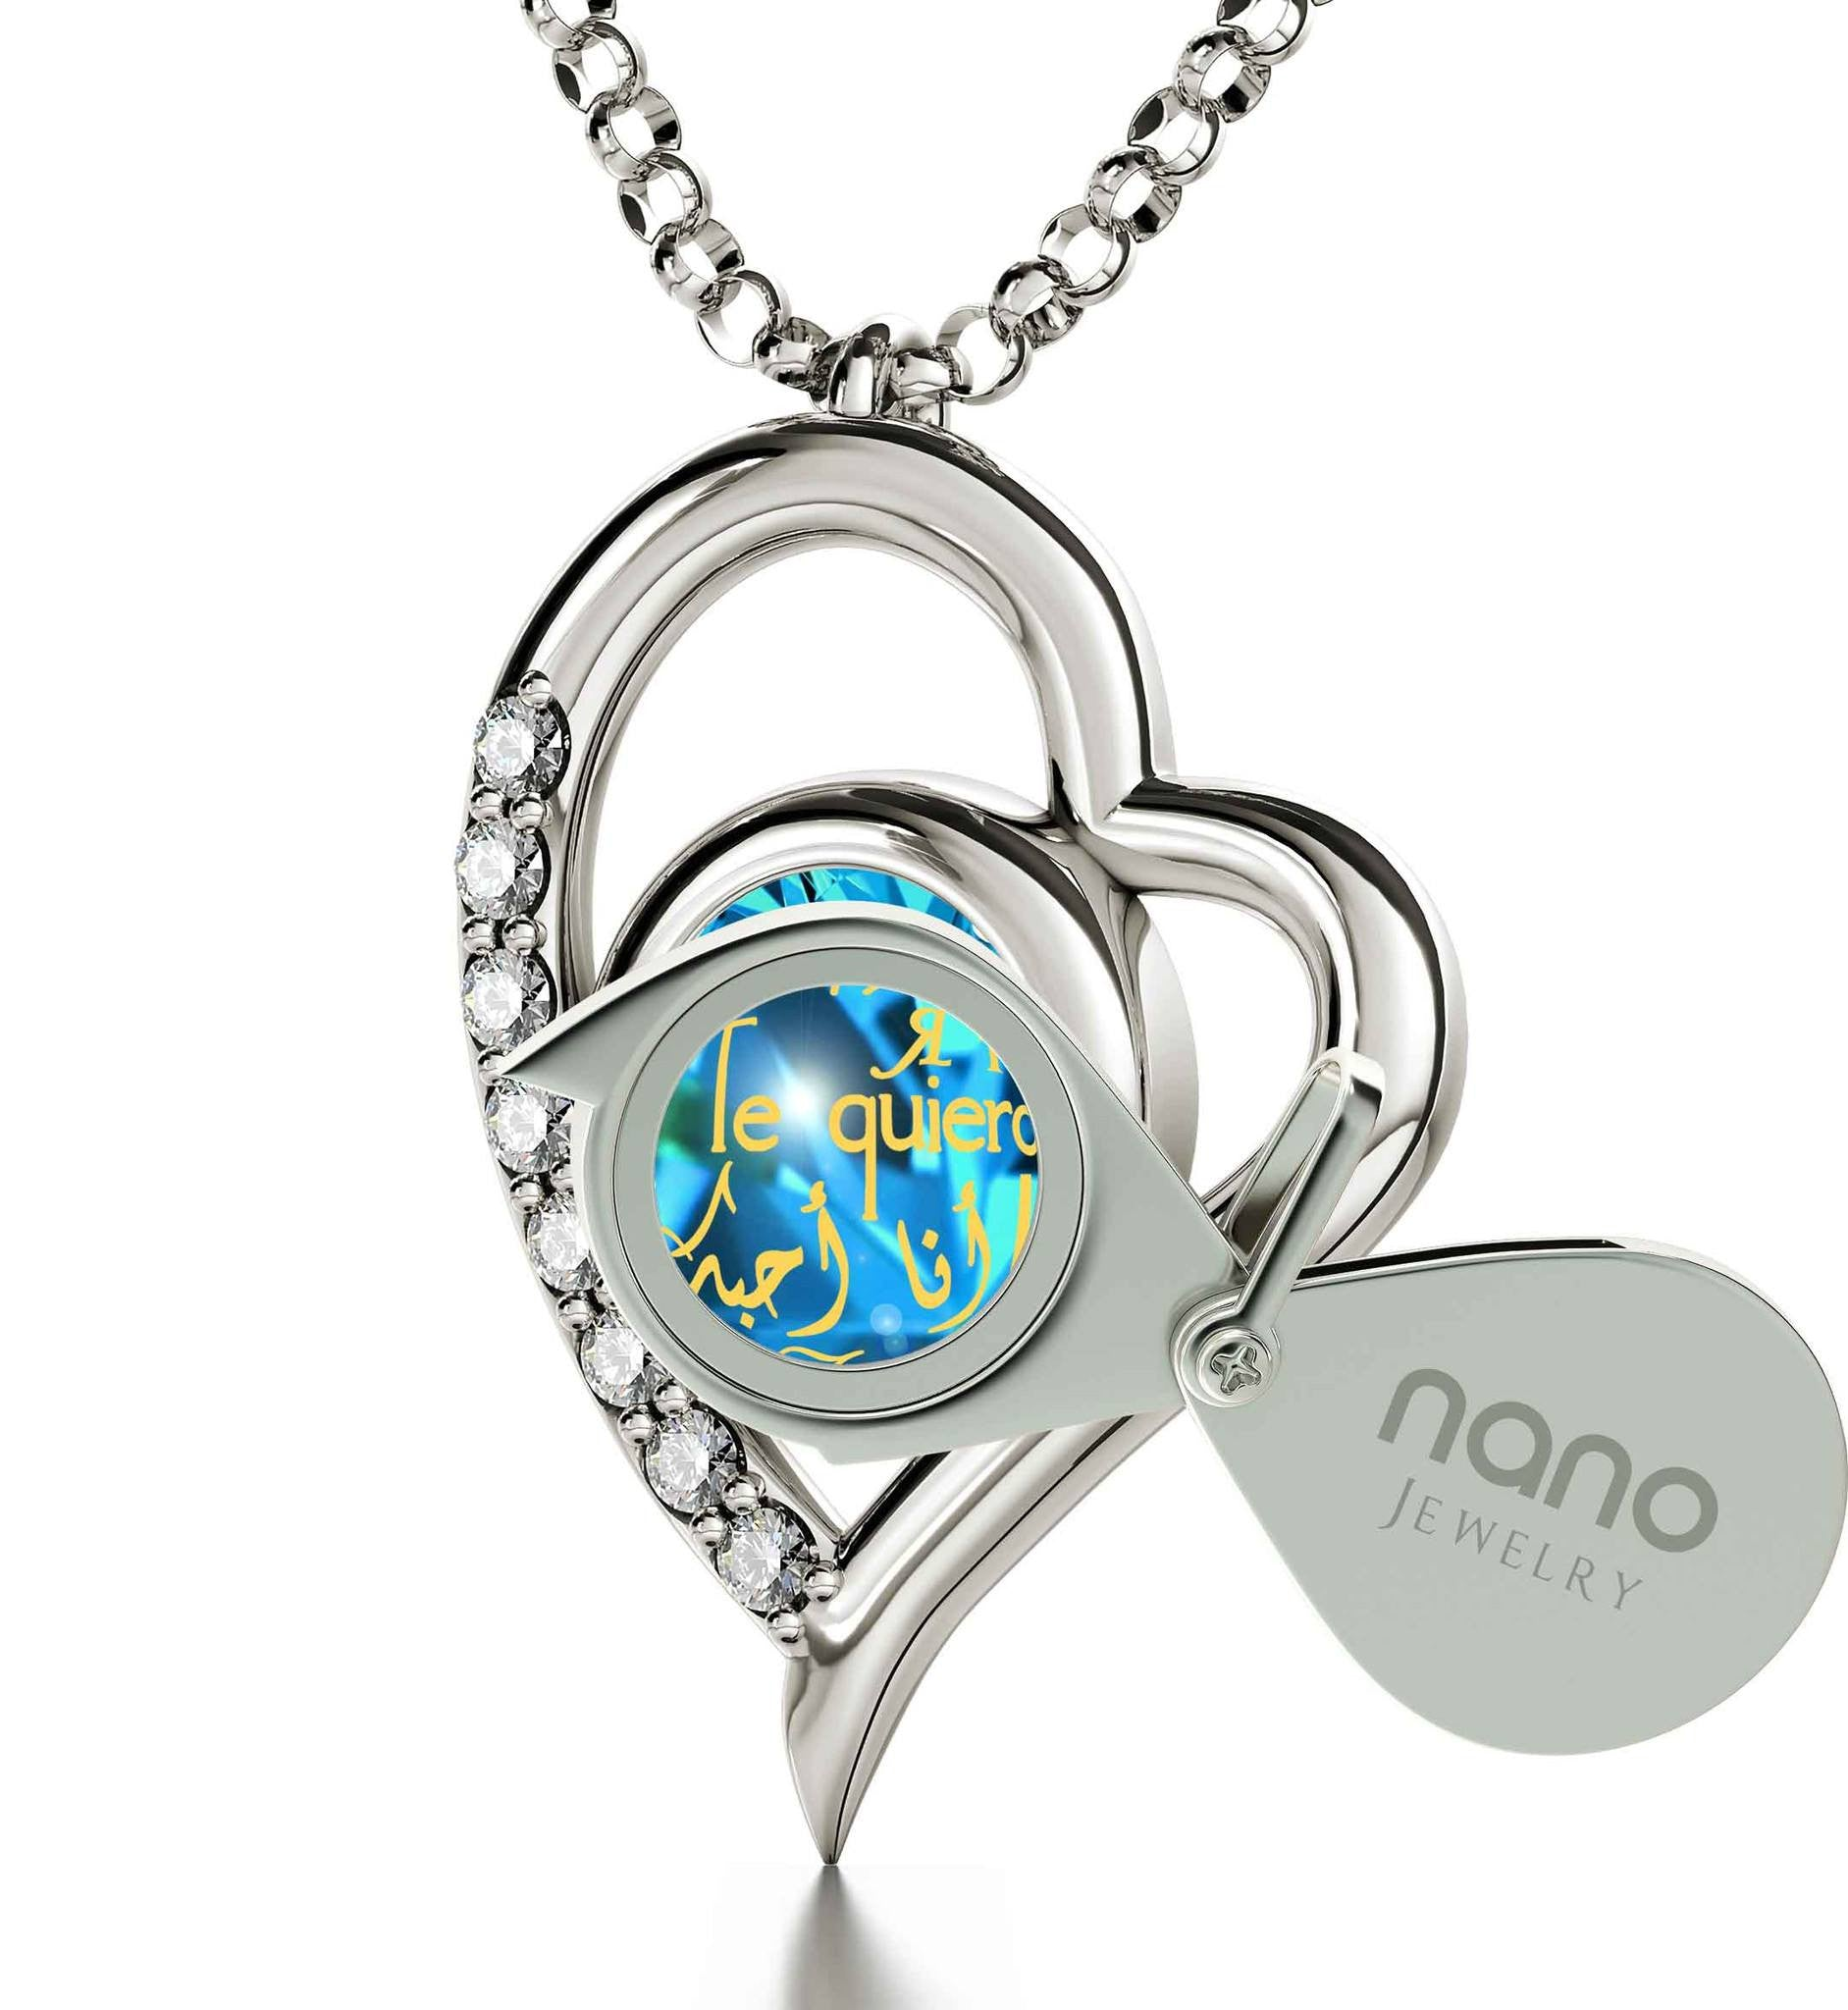 "Girlfriend Christmas Presents, ""TiAmo"", CZ Purple Stone, Good Anniversary Gifts for Her by Nano Jewelry"